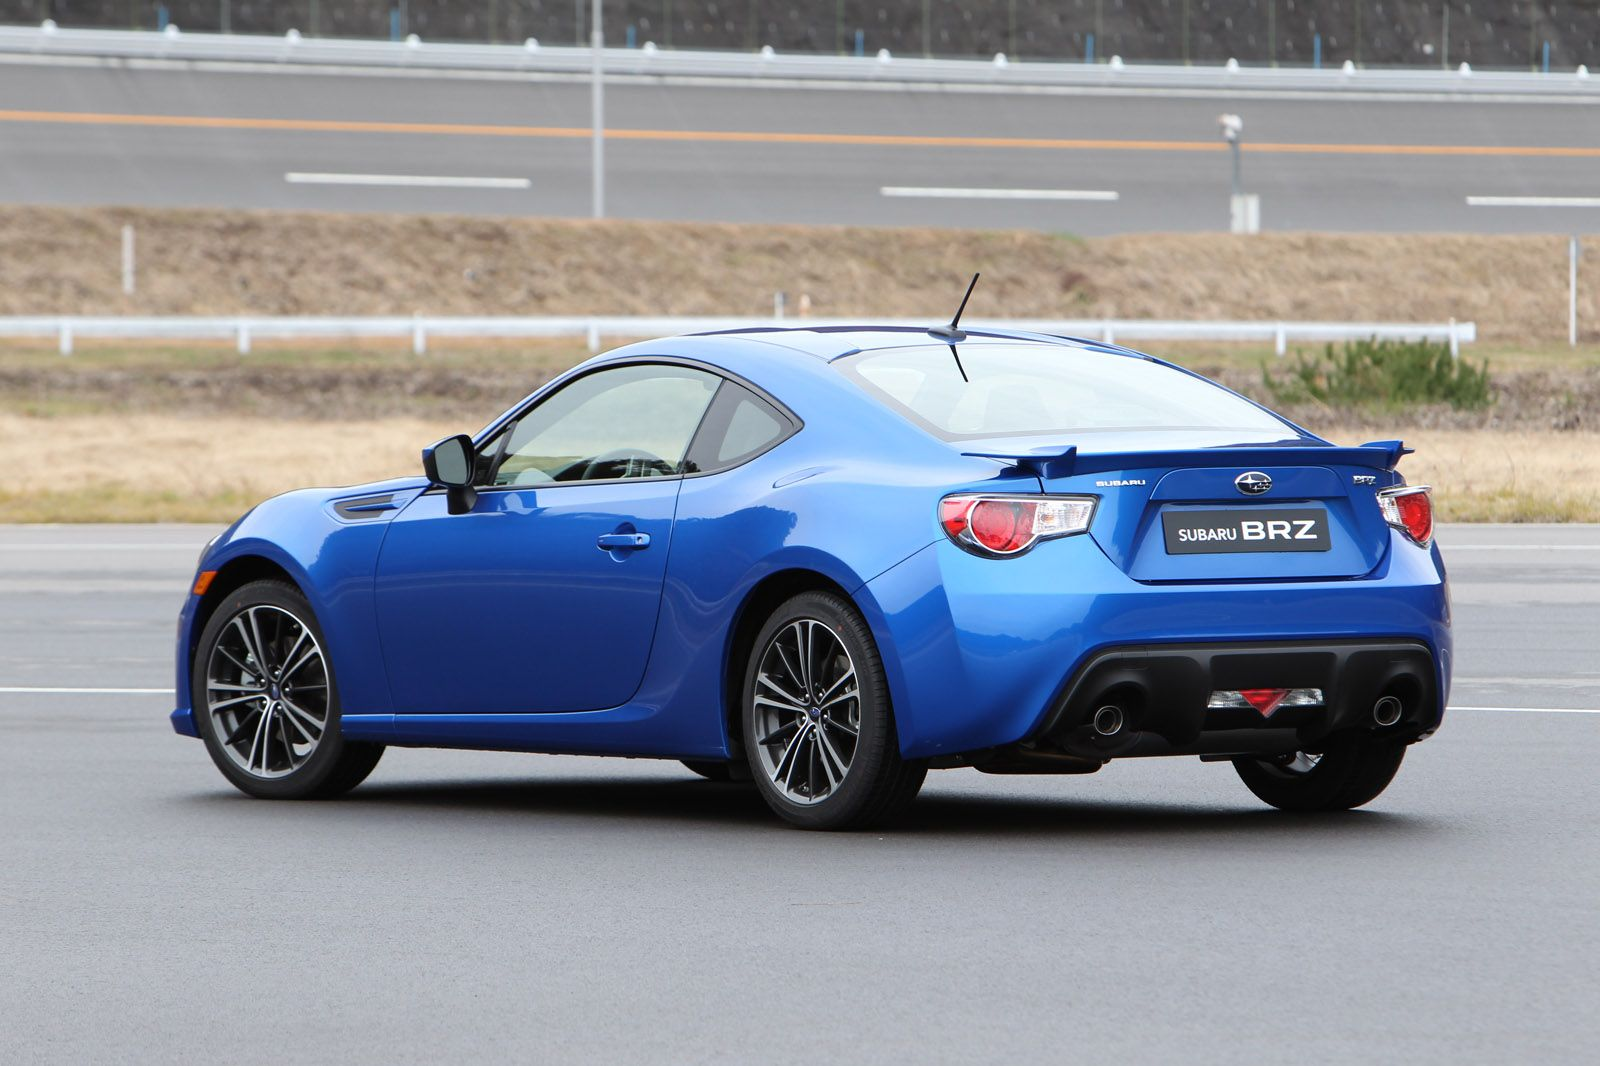 Perfect Subaru BRZ, So Much Is Right About This Car